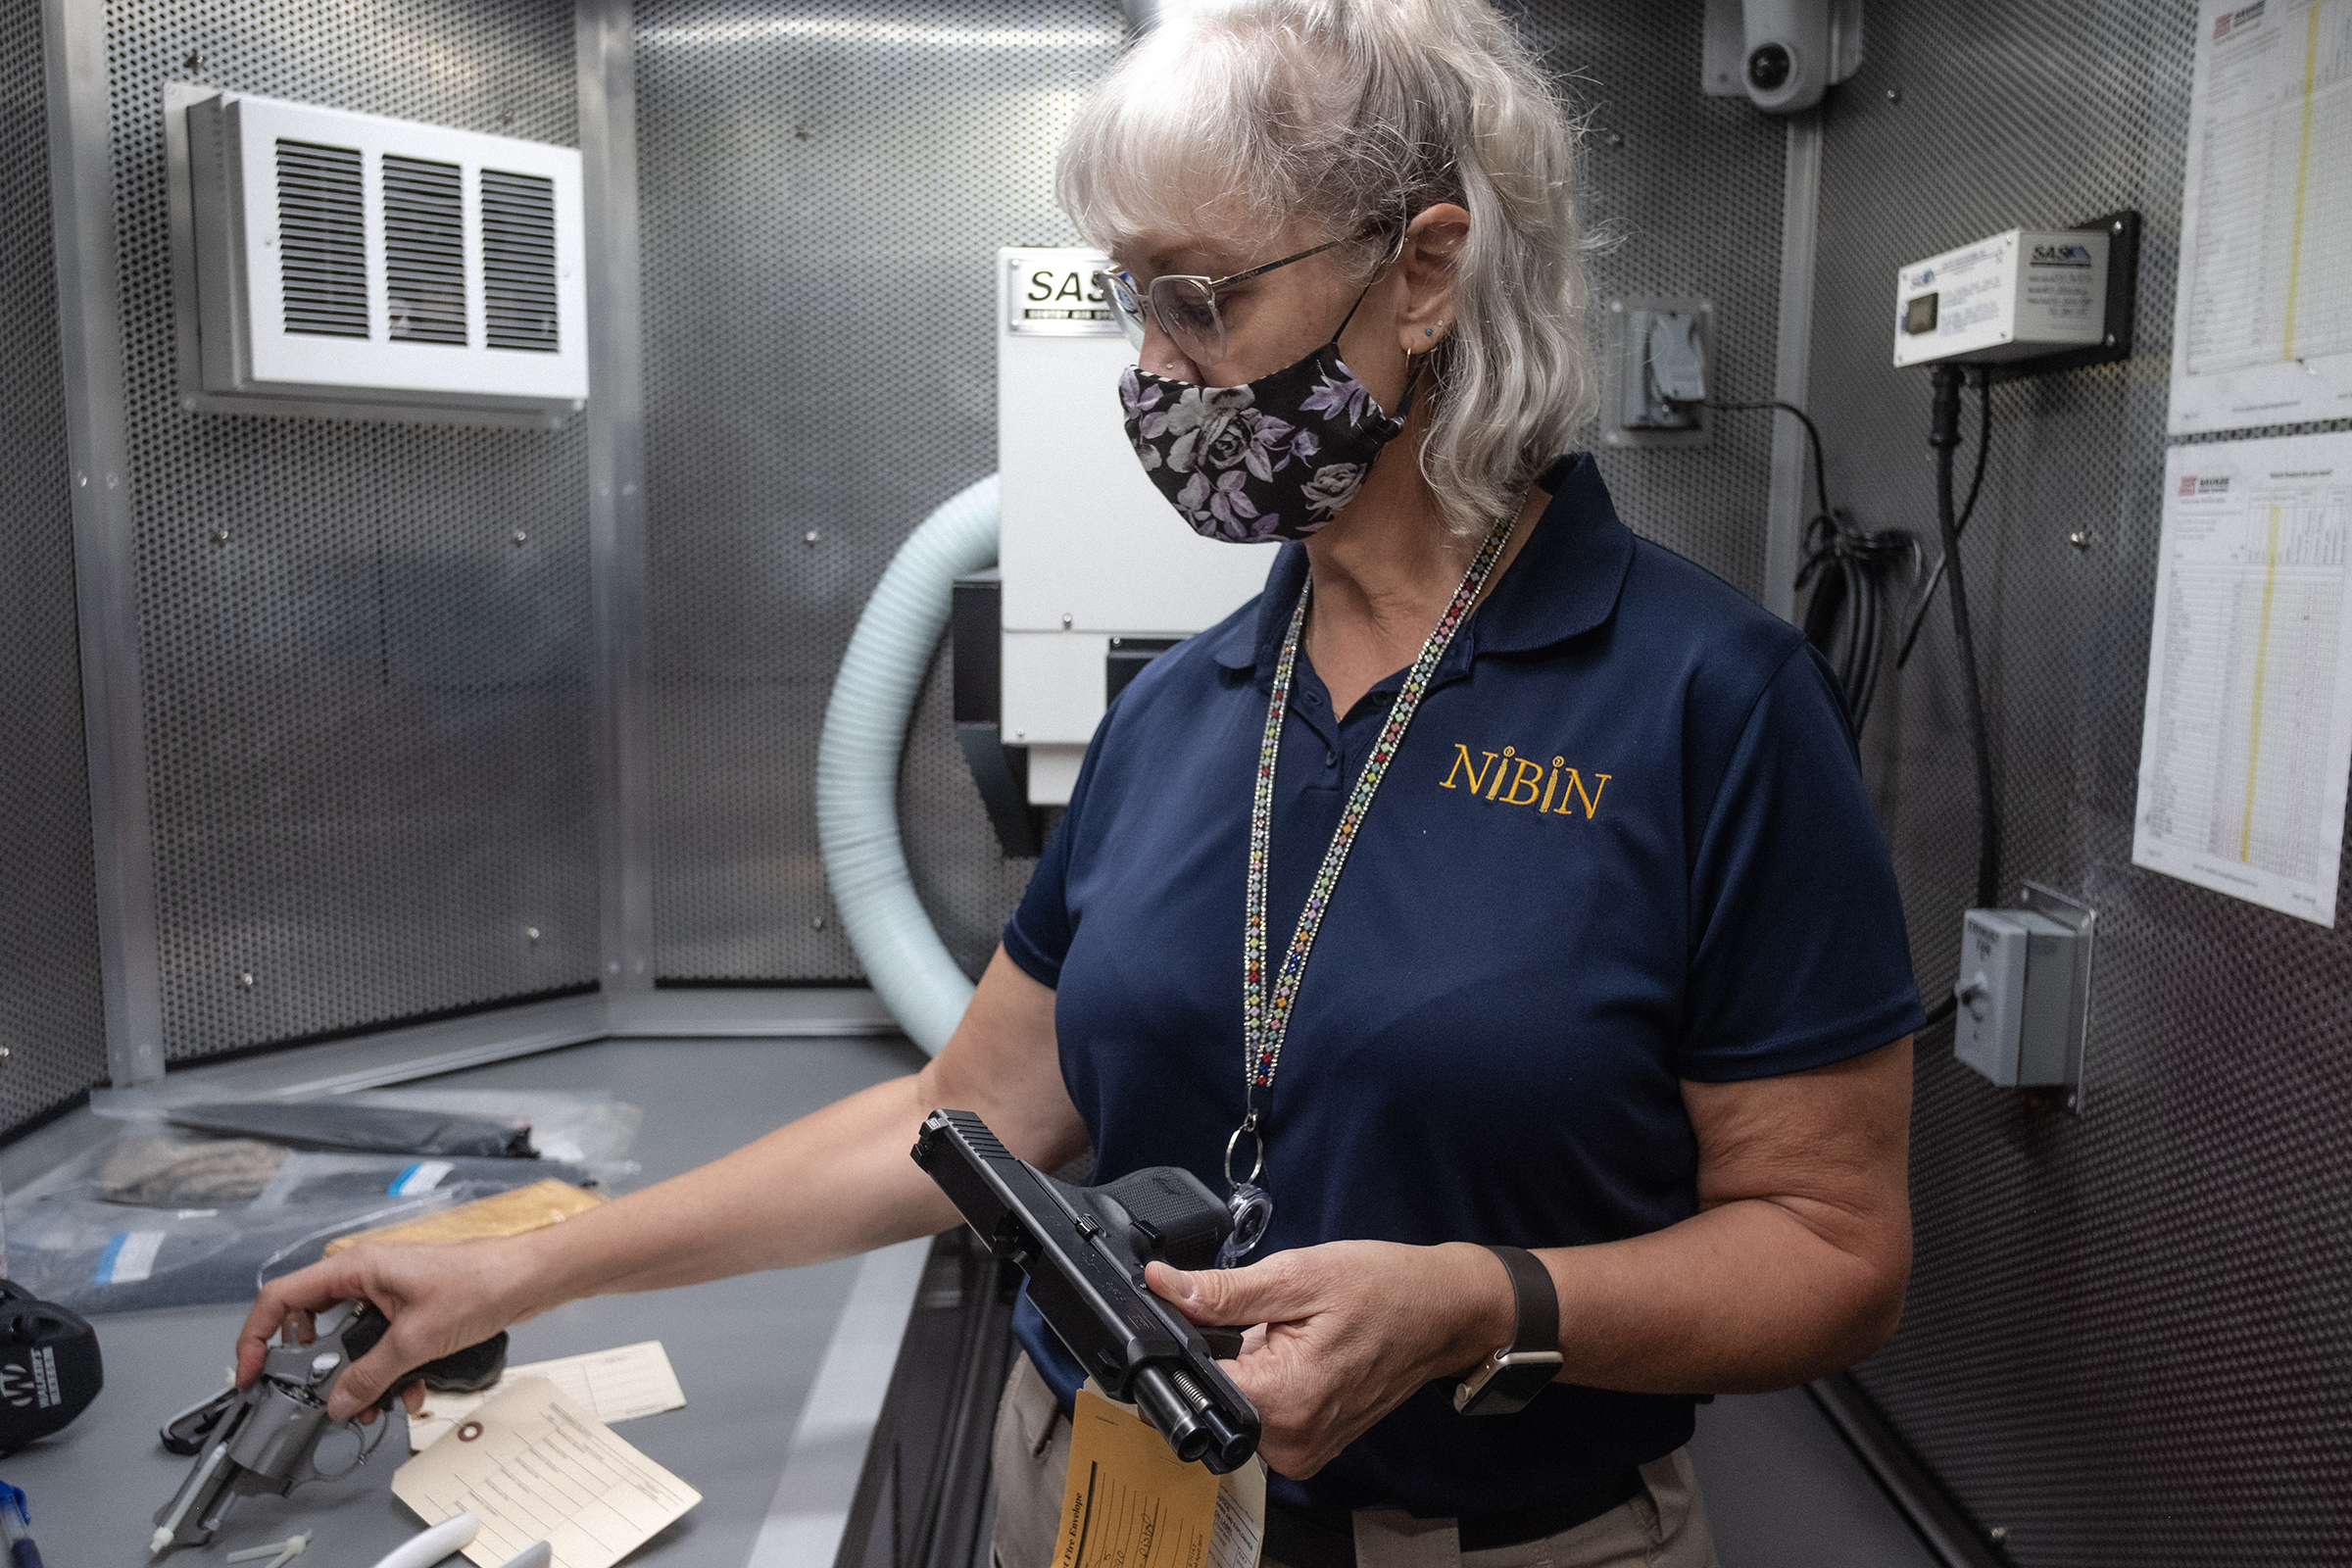 ATF technician Jill Jacobson is a member of a team of specialists sent to Chicago as part of the Operation Legend task force